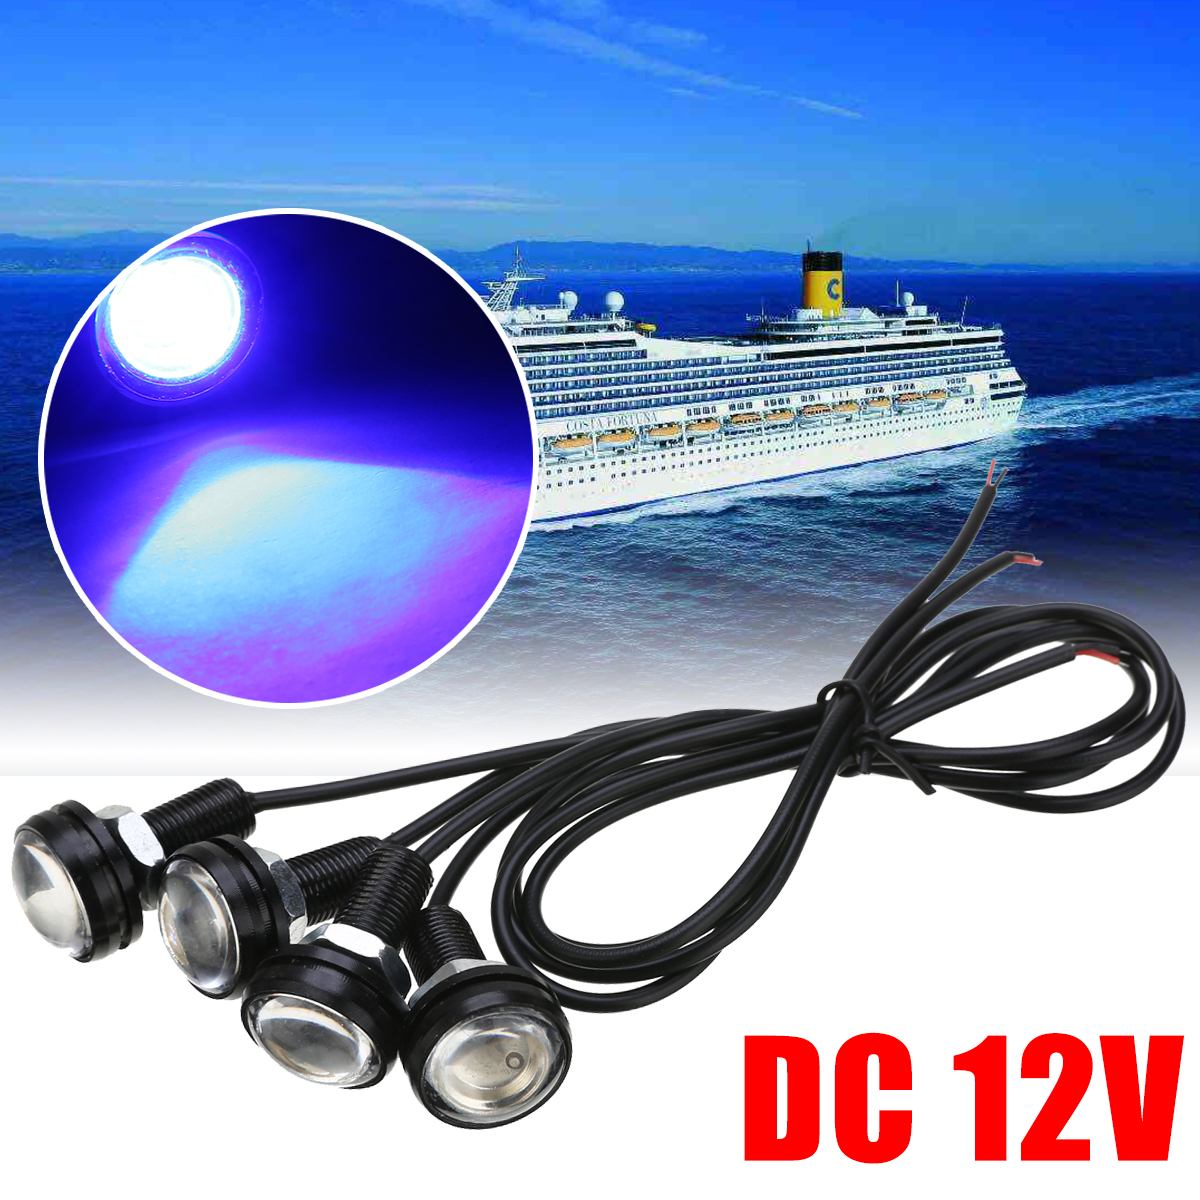 New Arrival 4pcs Set Blue LED Boat Eagle Eye Light Waterproof Outrigger Spreader Transom Underwater Corner Signal Lamp